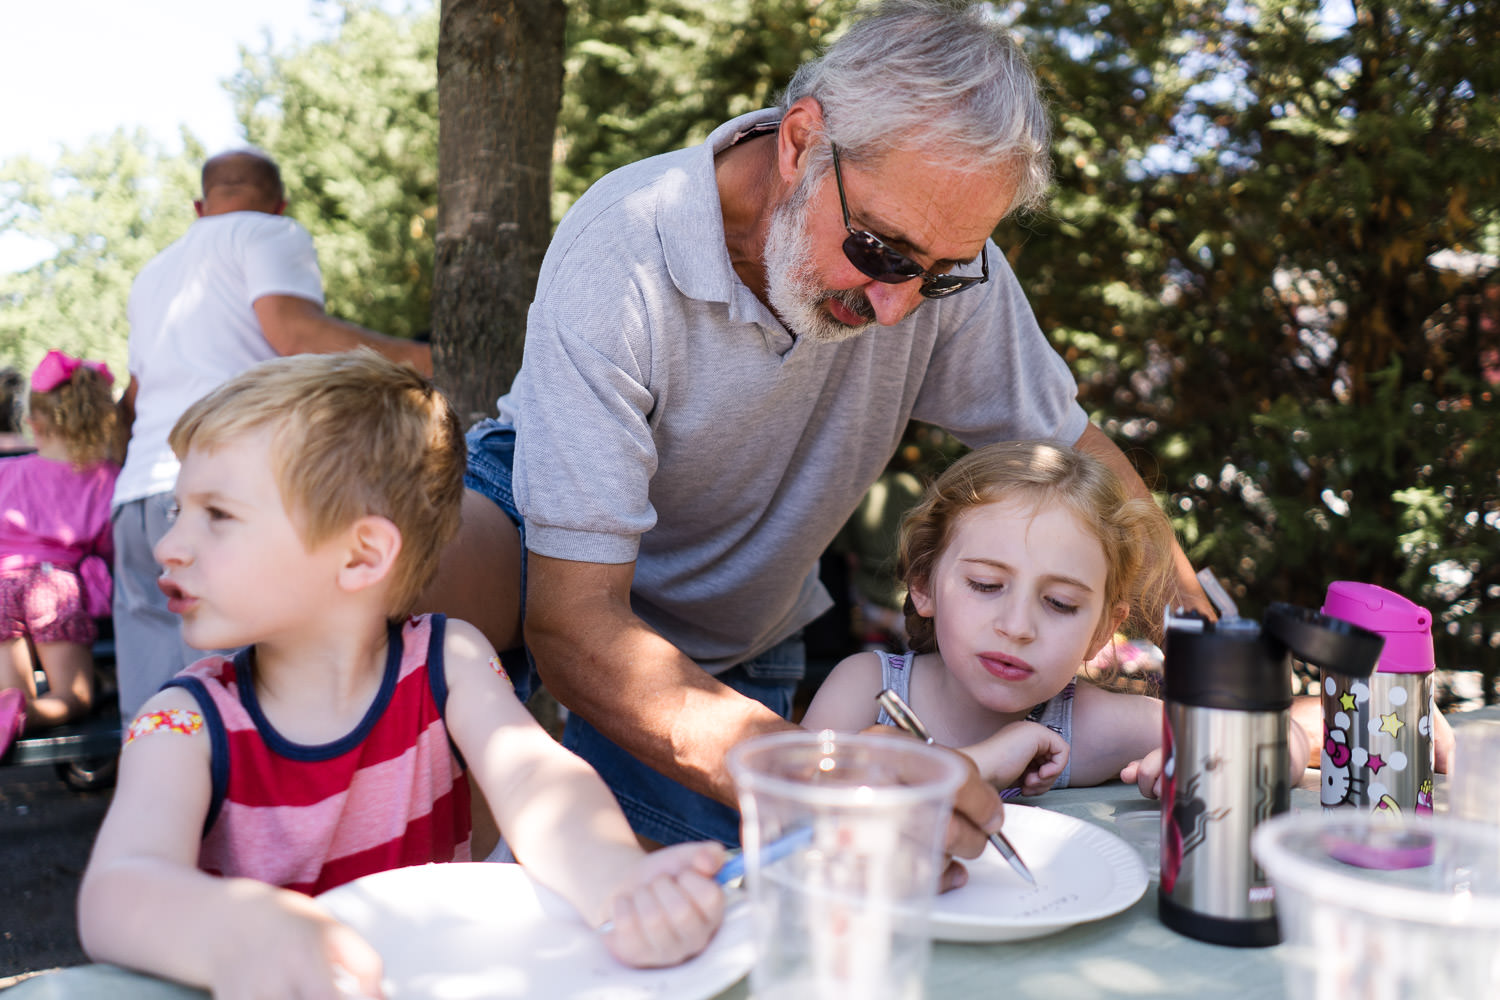 A grandfather helps his grandkids with word games.